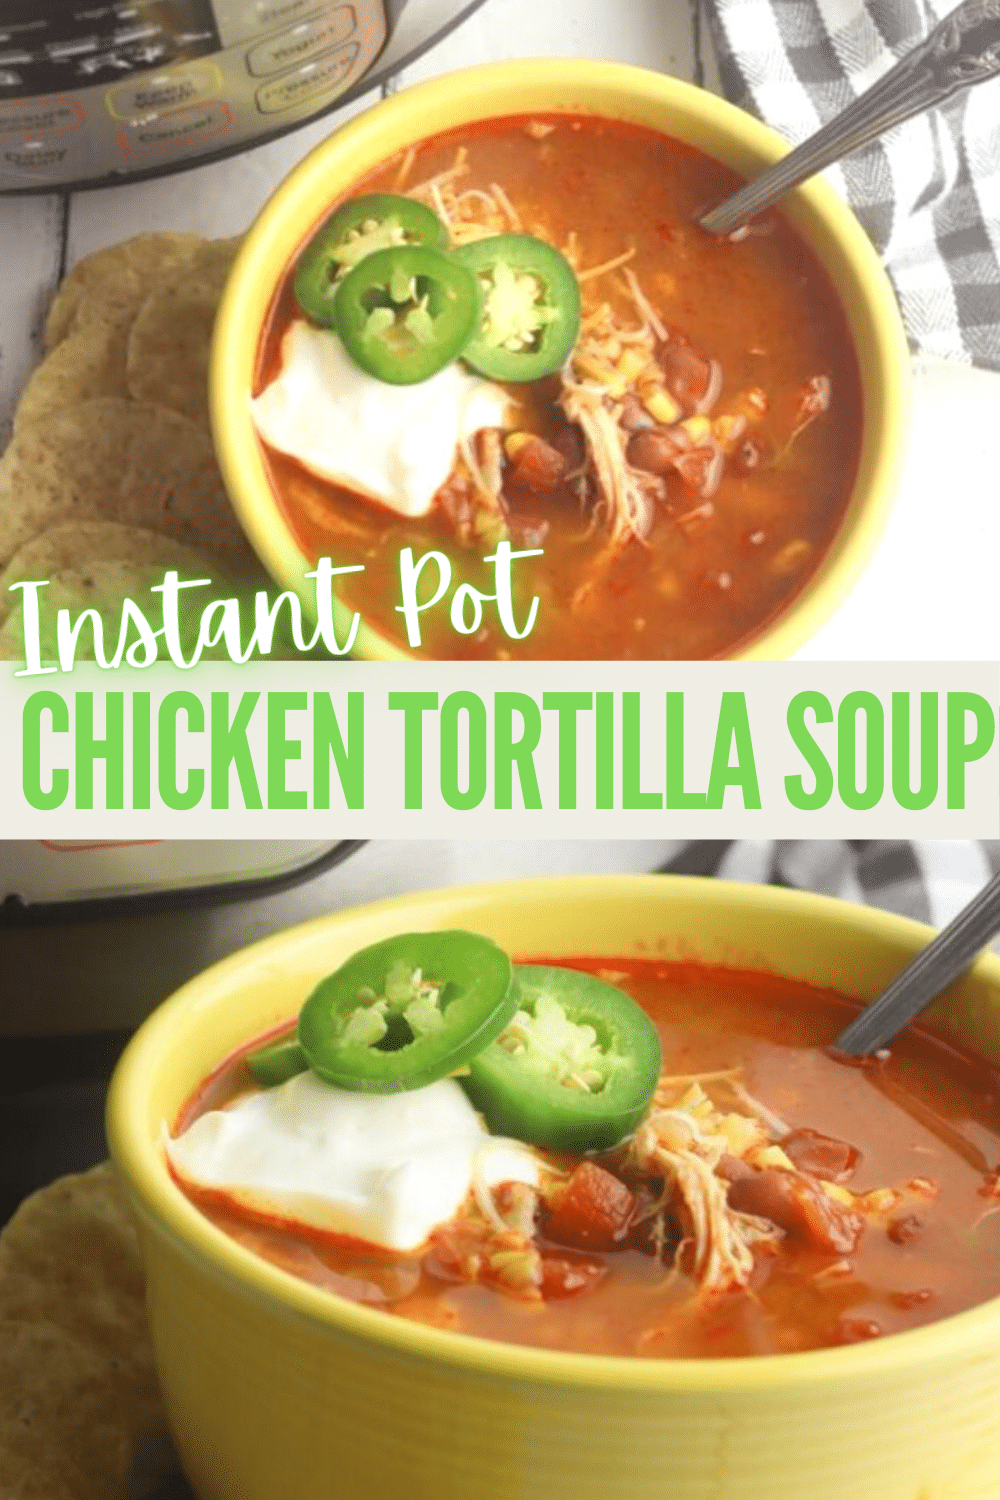 Instant pot chicken tortilla soup is easy to make at home. Loaded with beans and vegetables, you'll love the spicy mexican tortilla soup. #chickentortillasoup #tortillasoup #chicken #soup #mexicanfood via @wondermomwannab